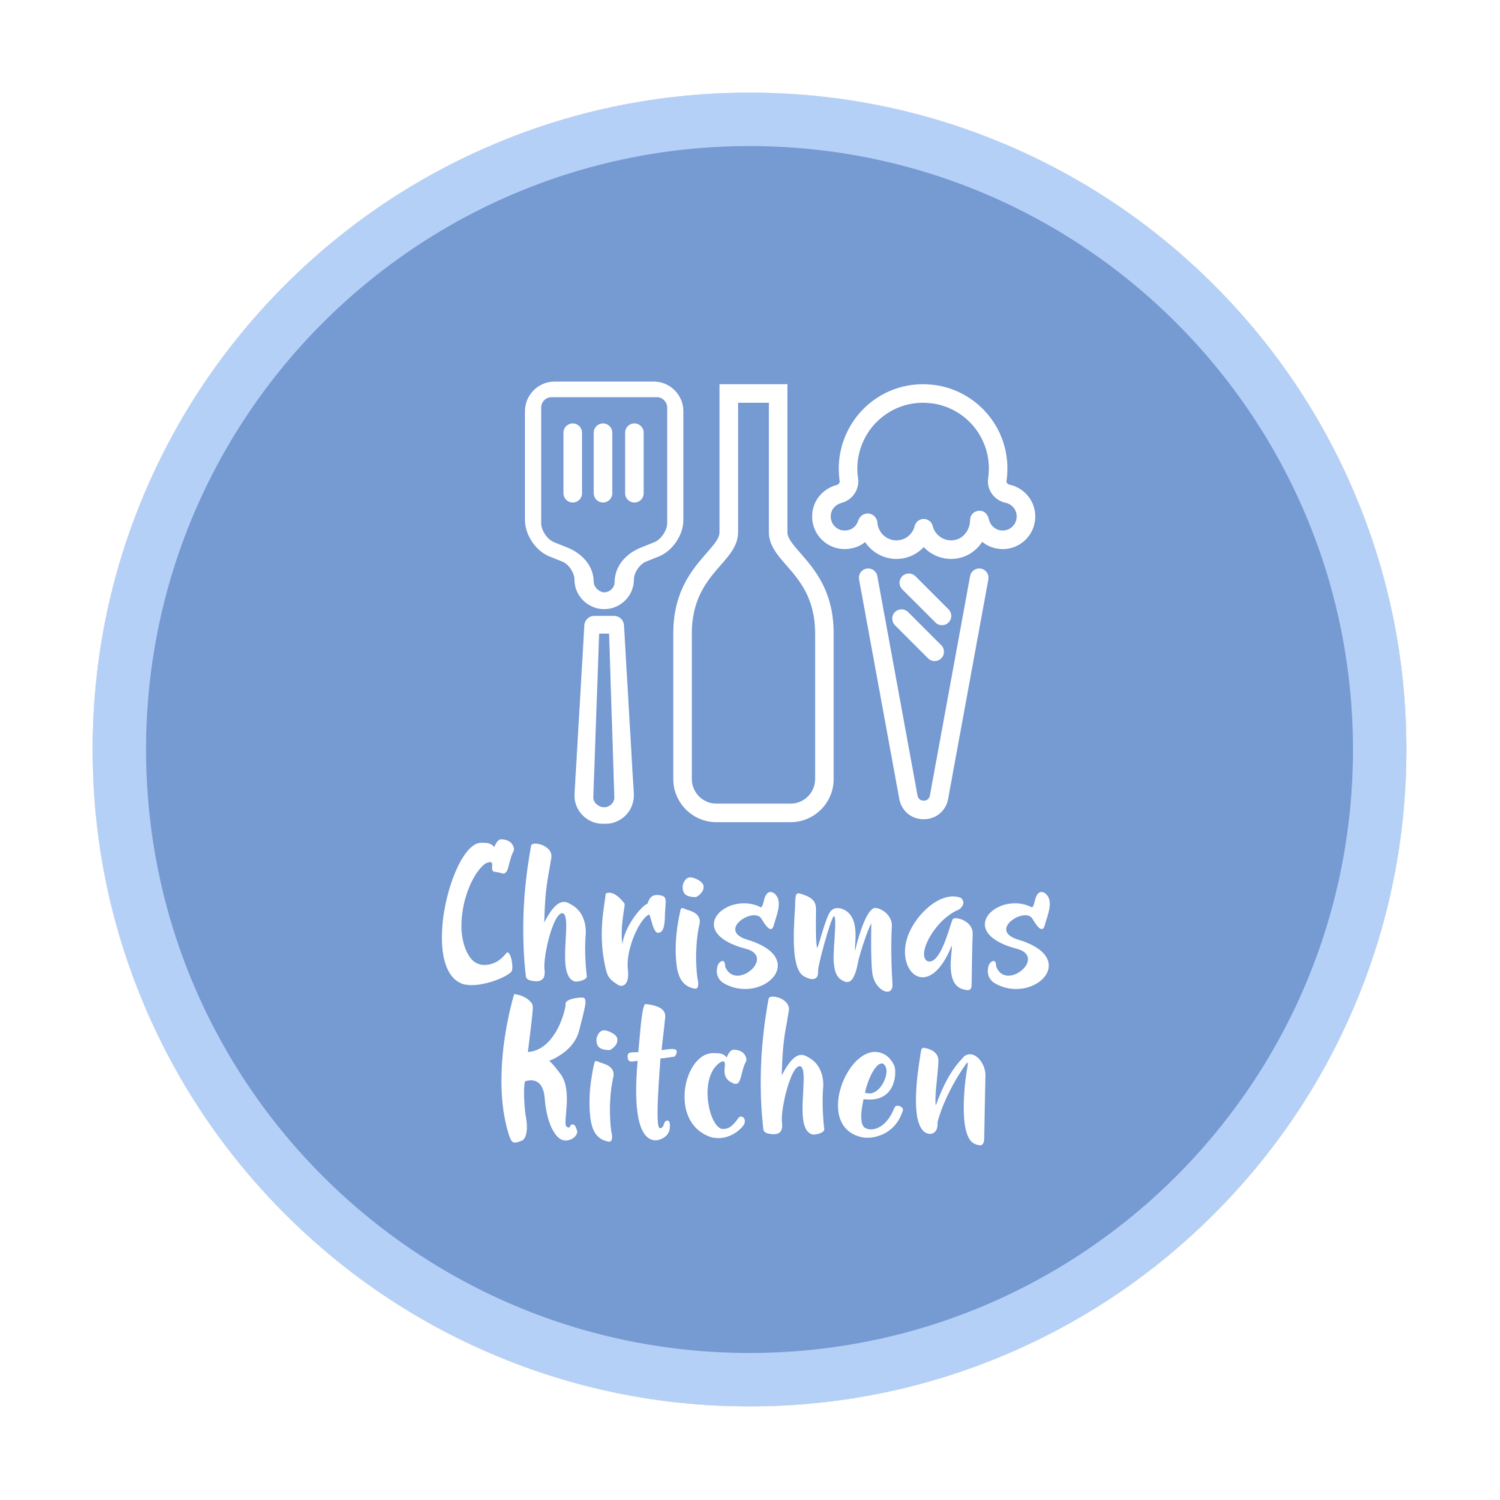 Chrismas Kitchen